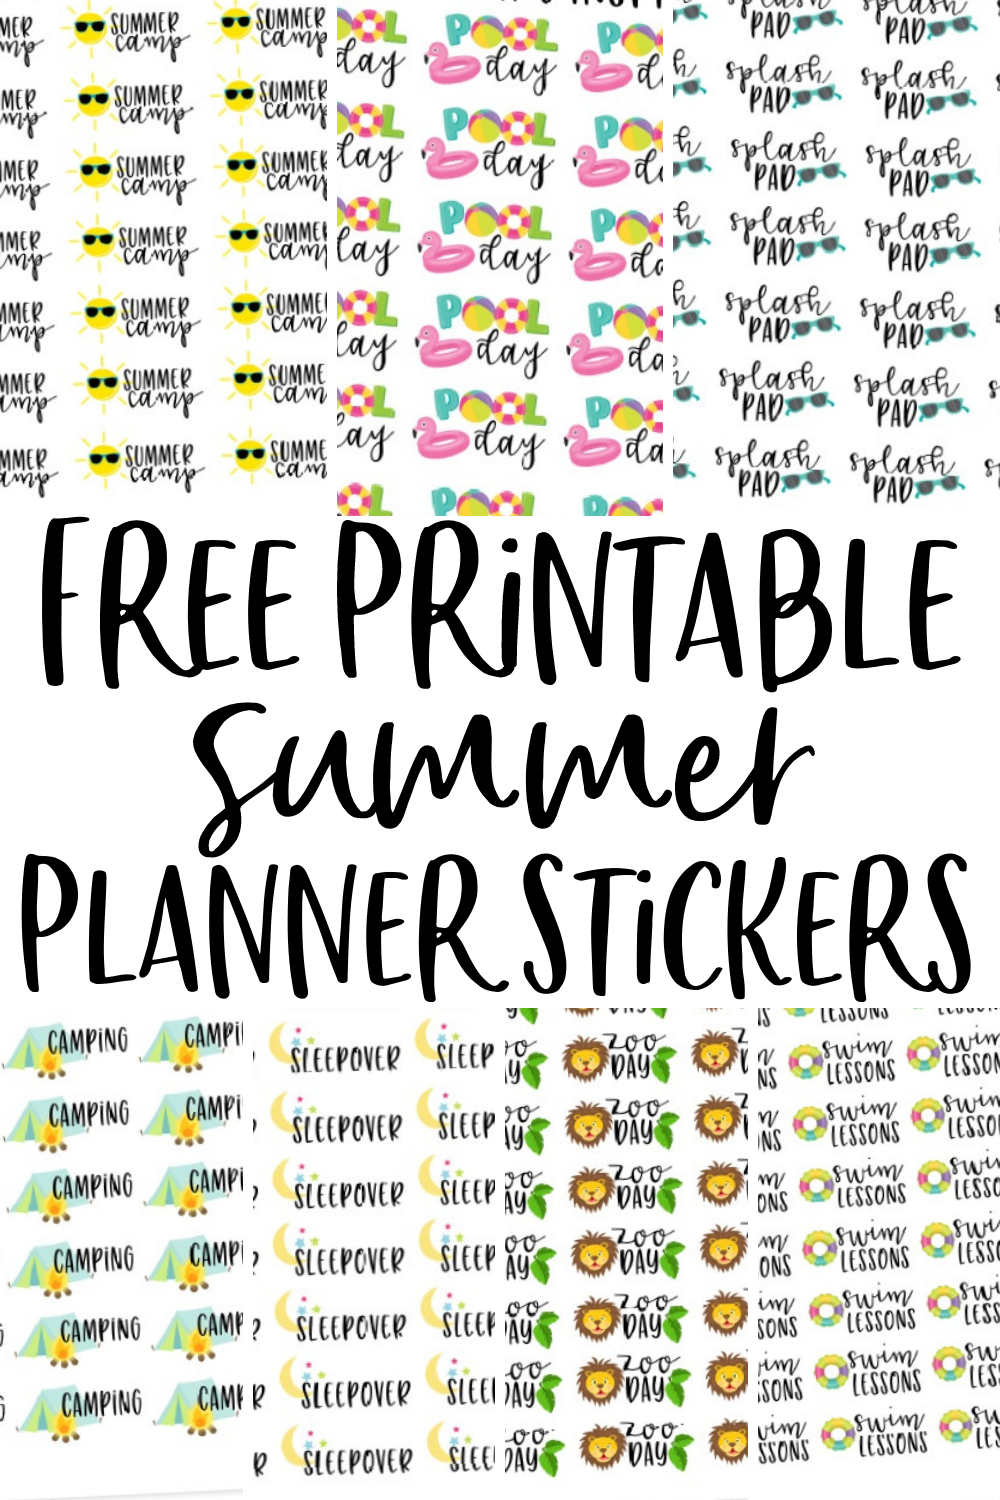 photo relating to Printable Stickers Free titled No cost Printable Planner Stickers for Summer months - Developing Motivated